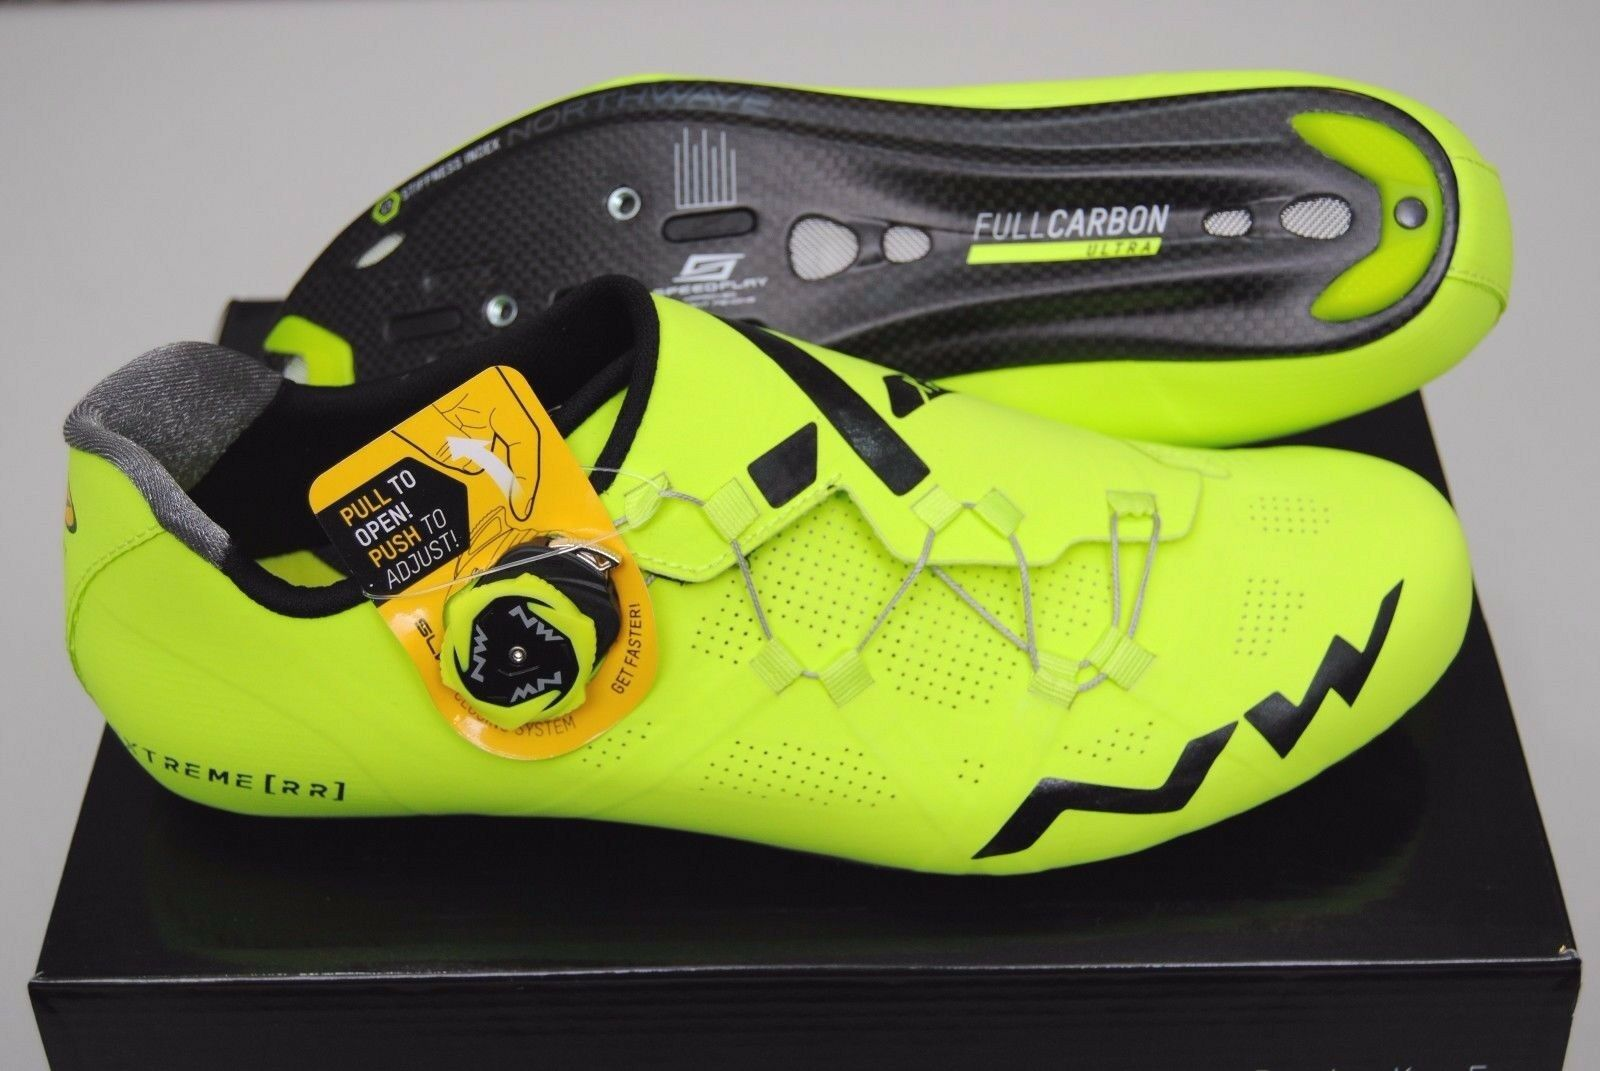 Schuhe road Northwave extreme RR gelb fluo/Schuhes Northwave extreme RR